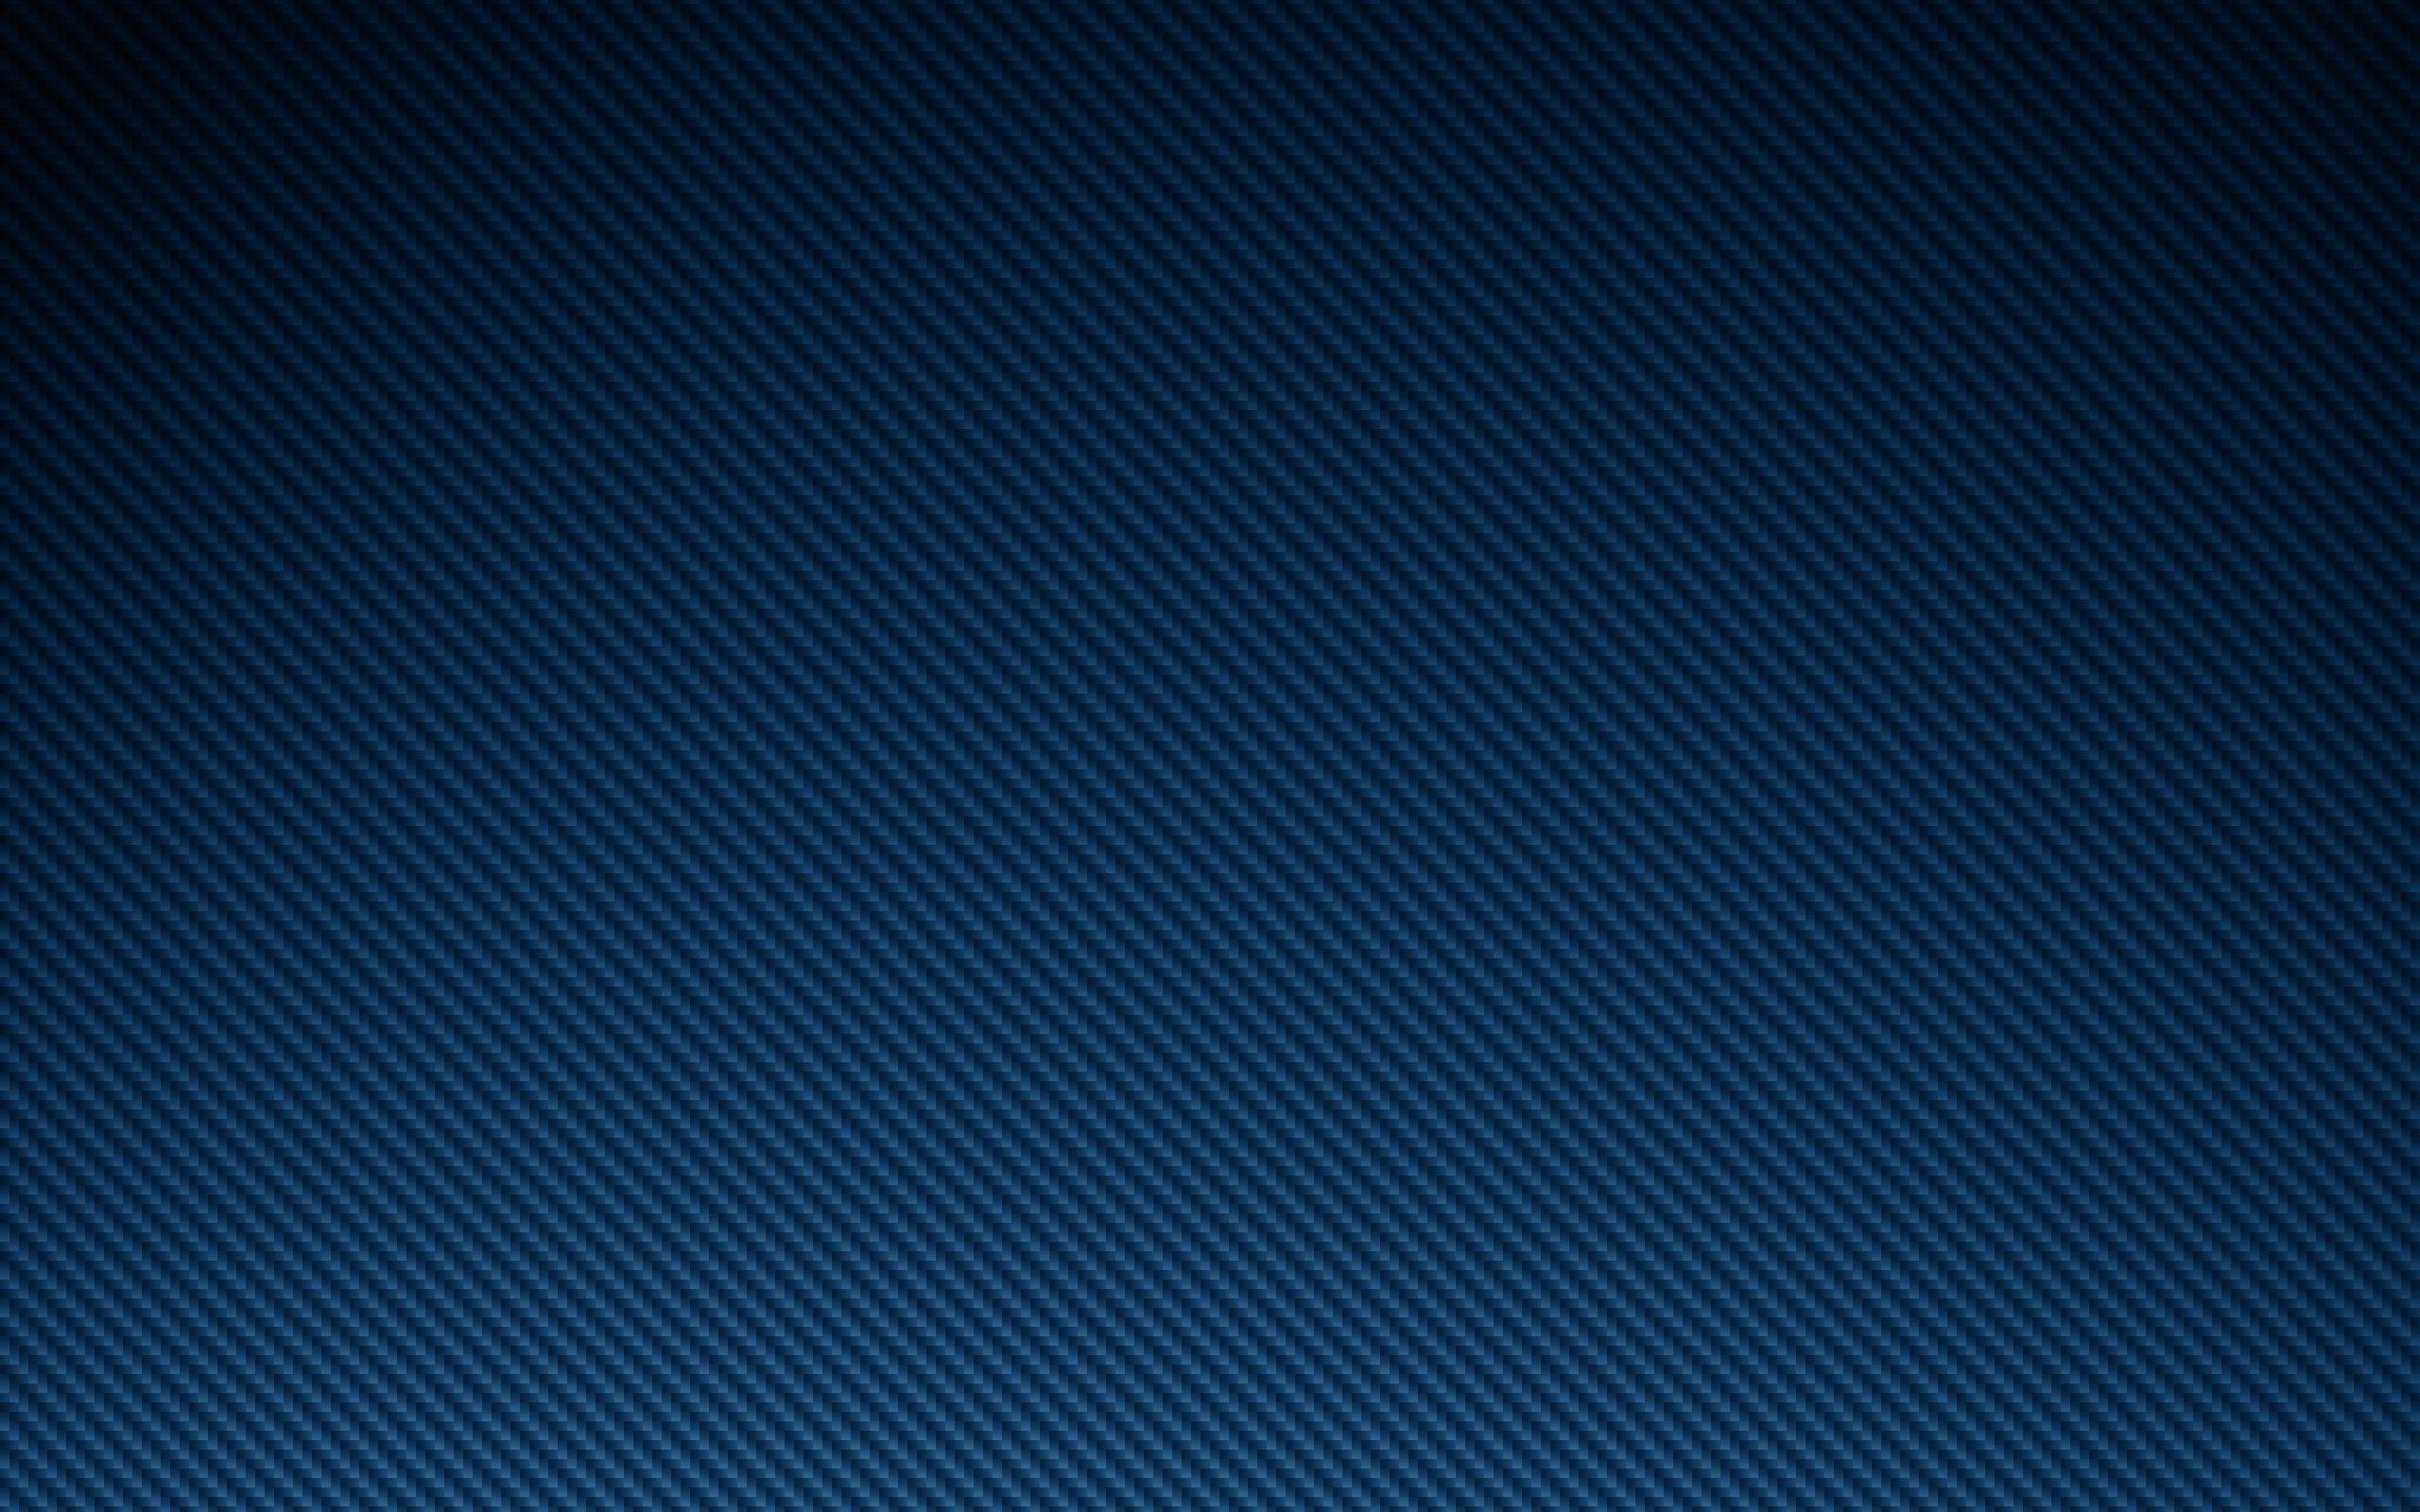 wallpaper art blue carbon fiber pictures hd. - media file